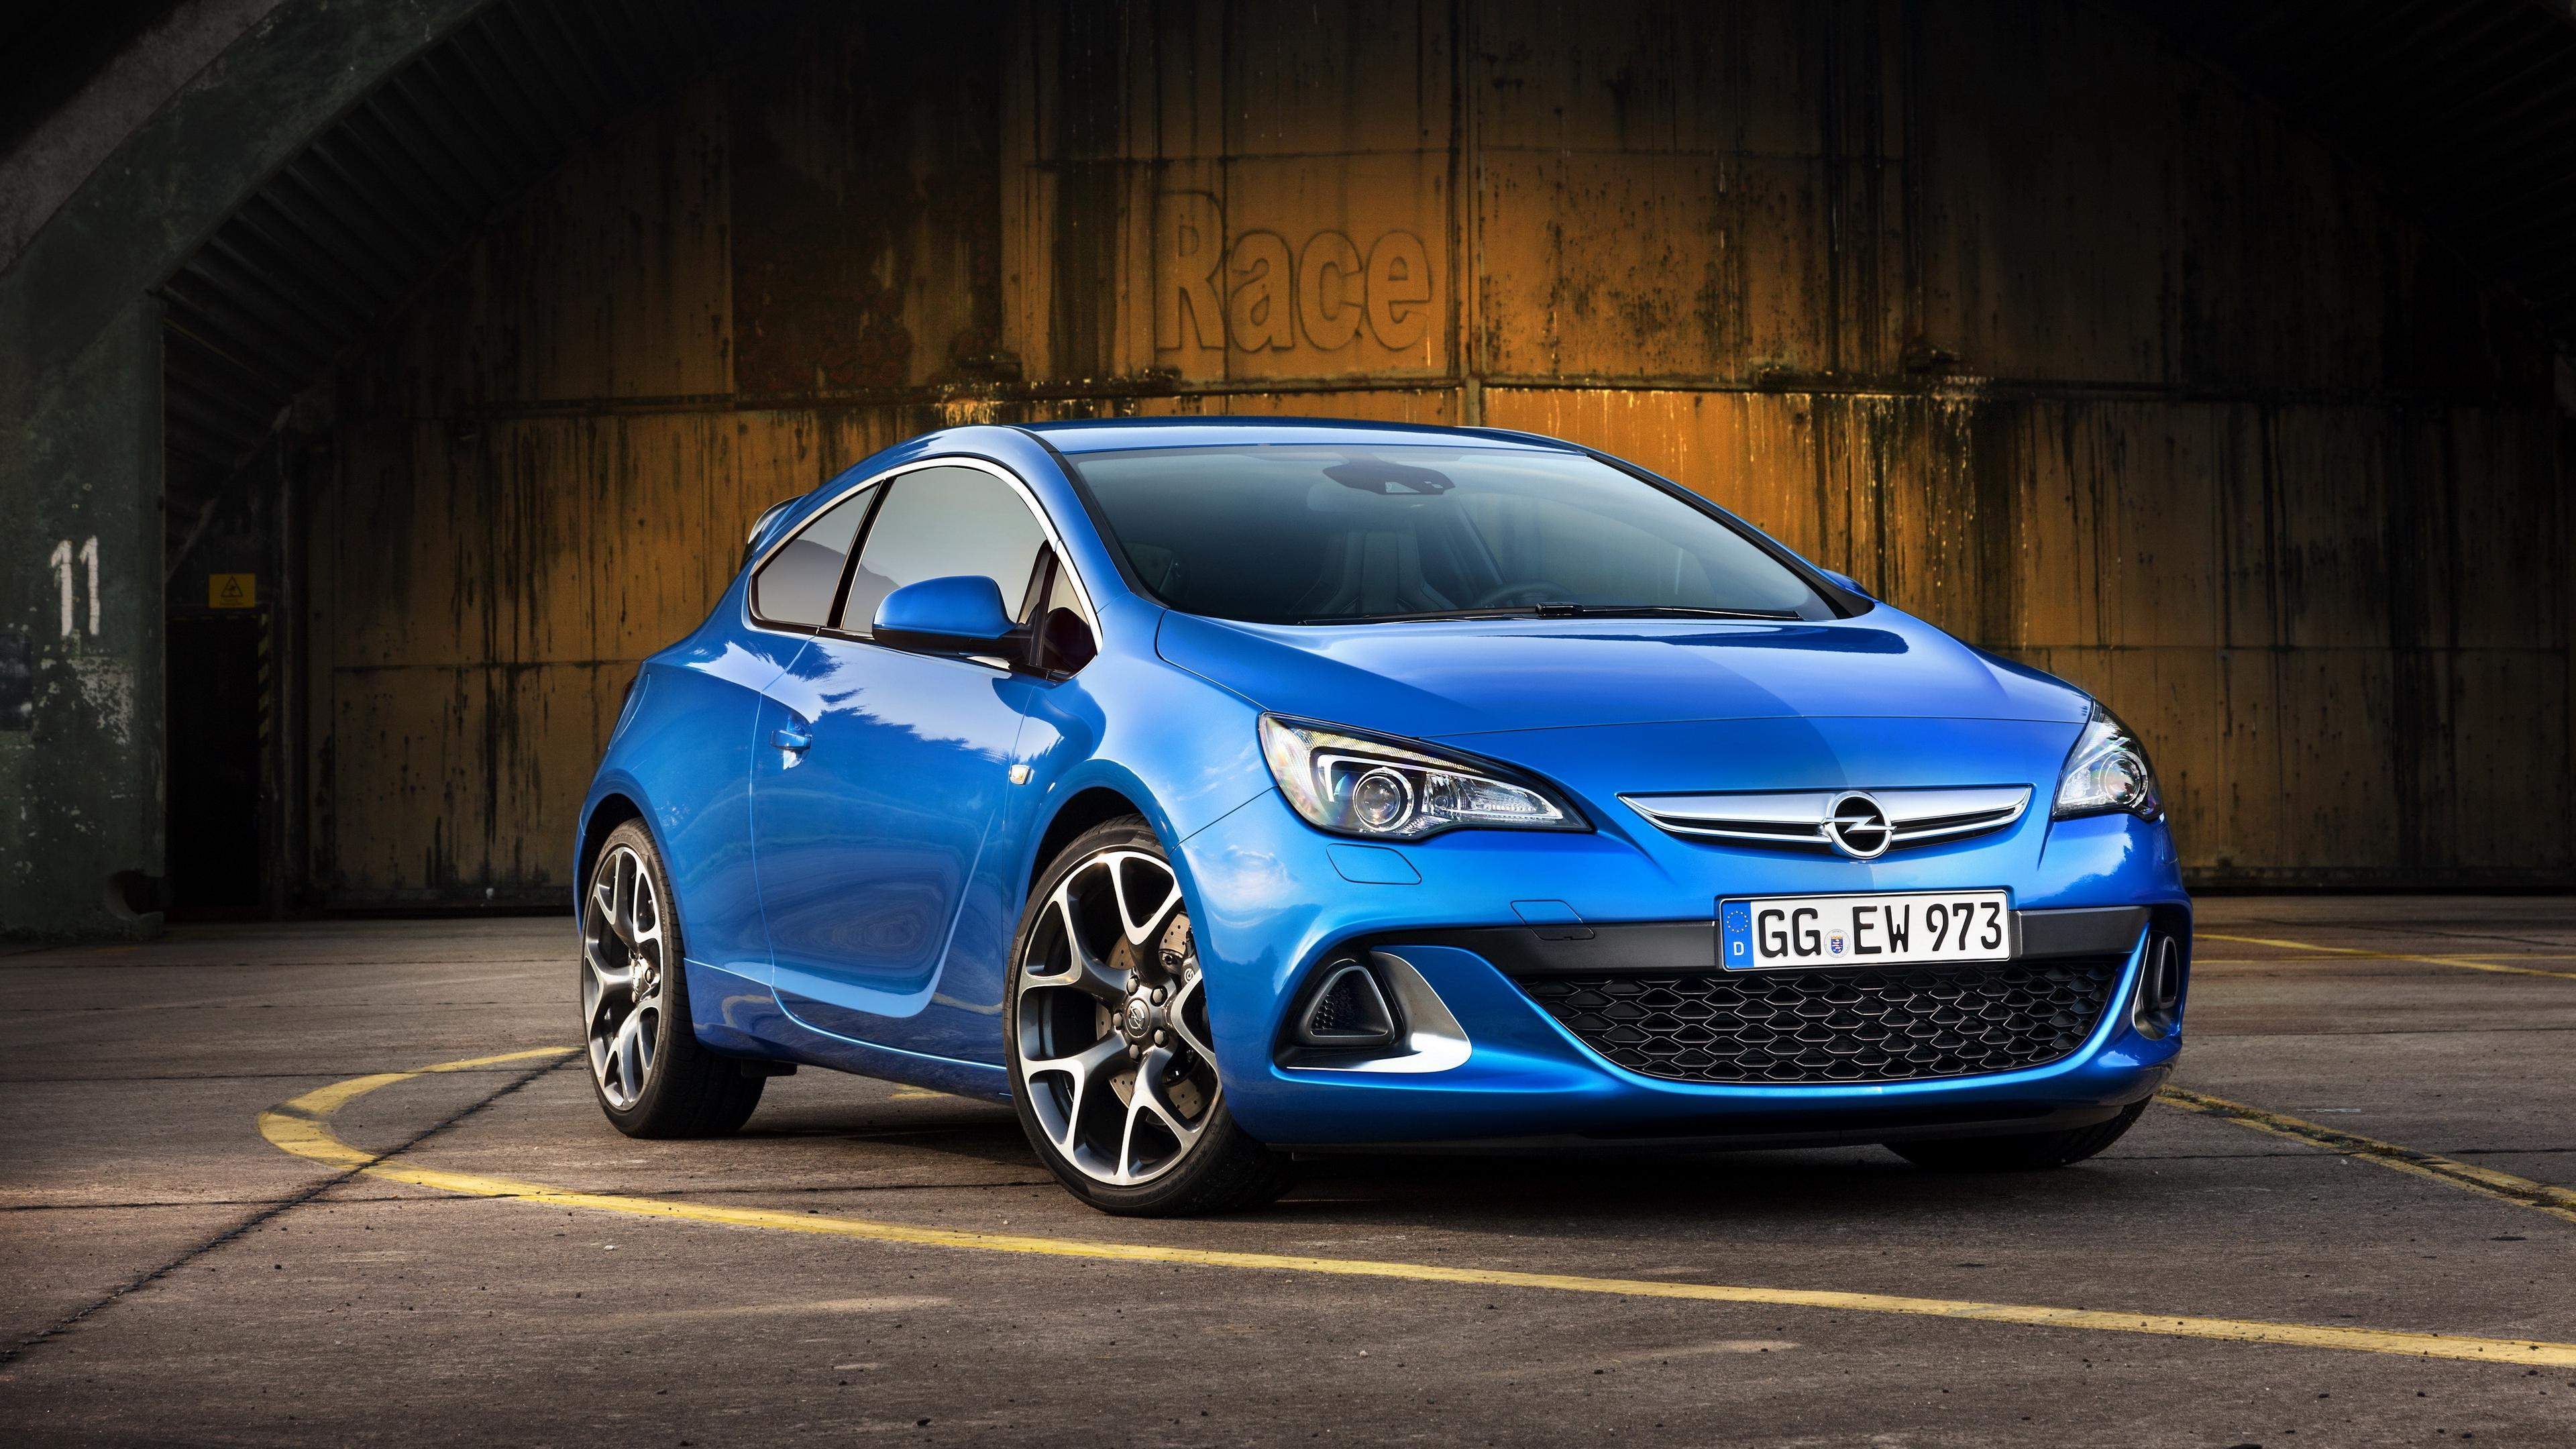 Download wallpapers 3840x2160 opel, astra, side view, blue 4k uhd 16